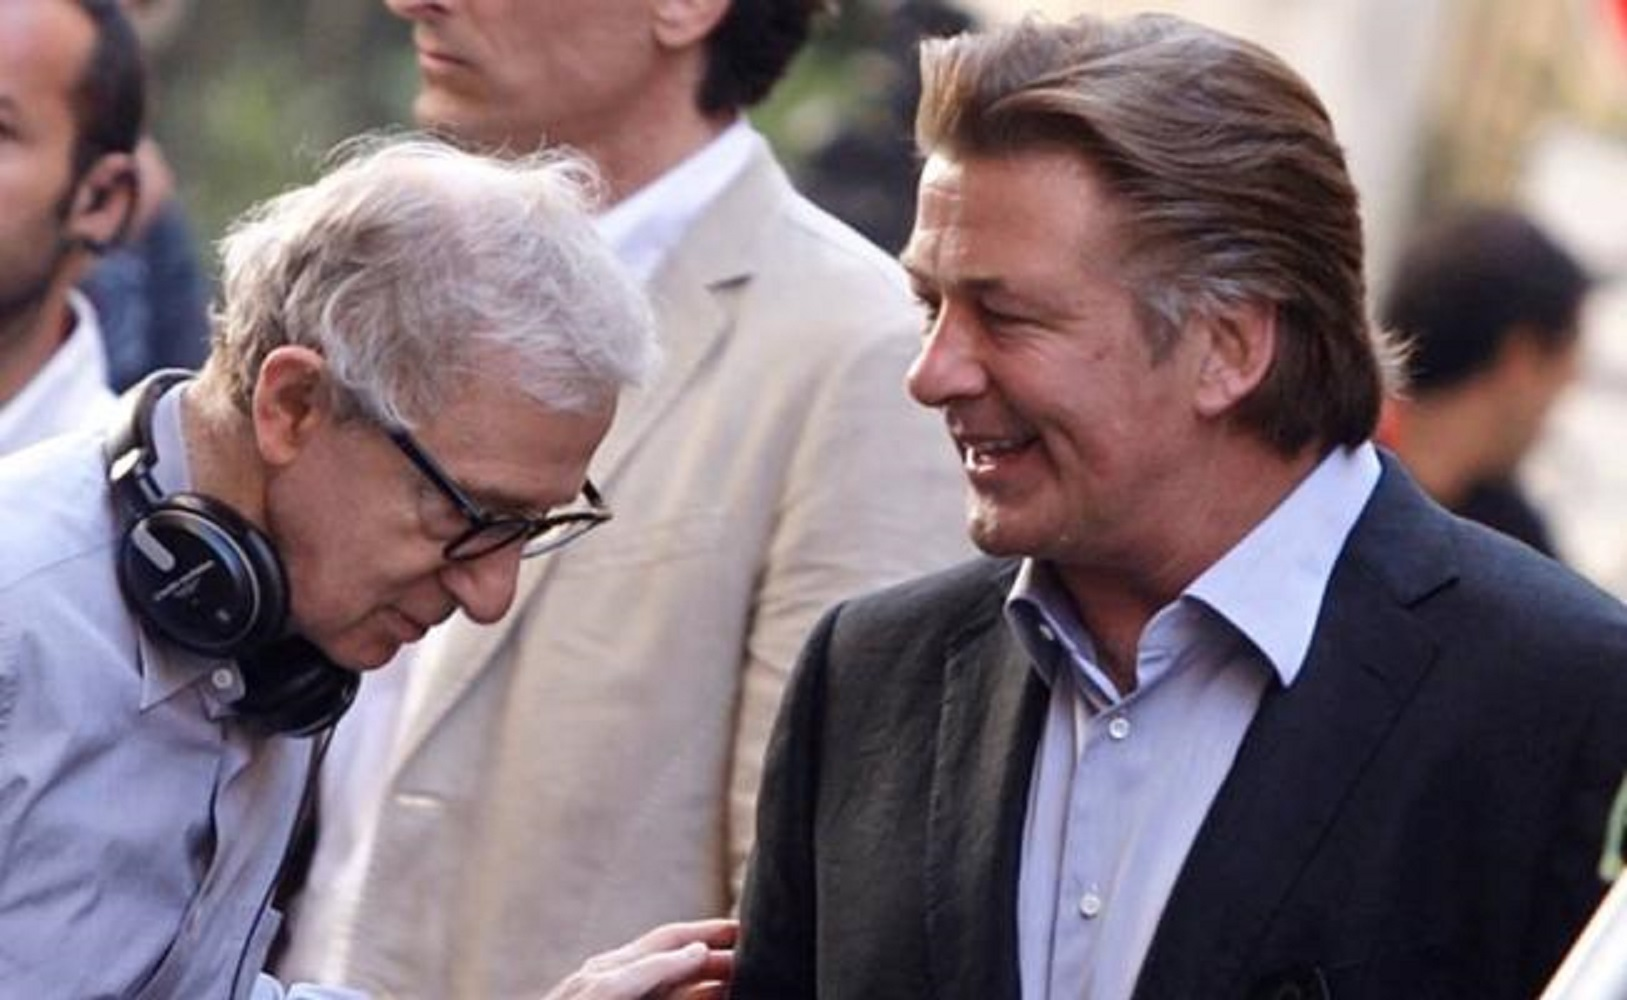 Alec Baldwin, Woody Allen, cine, twitter, abuso sexual, injusticia, desigualidad, 22 años